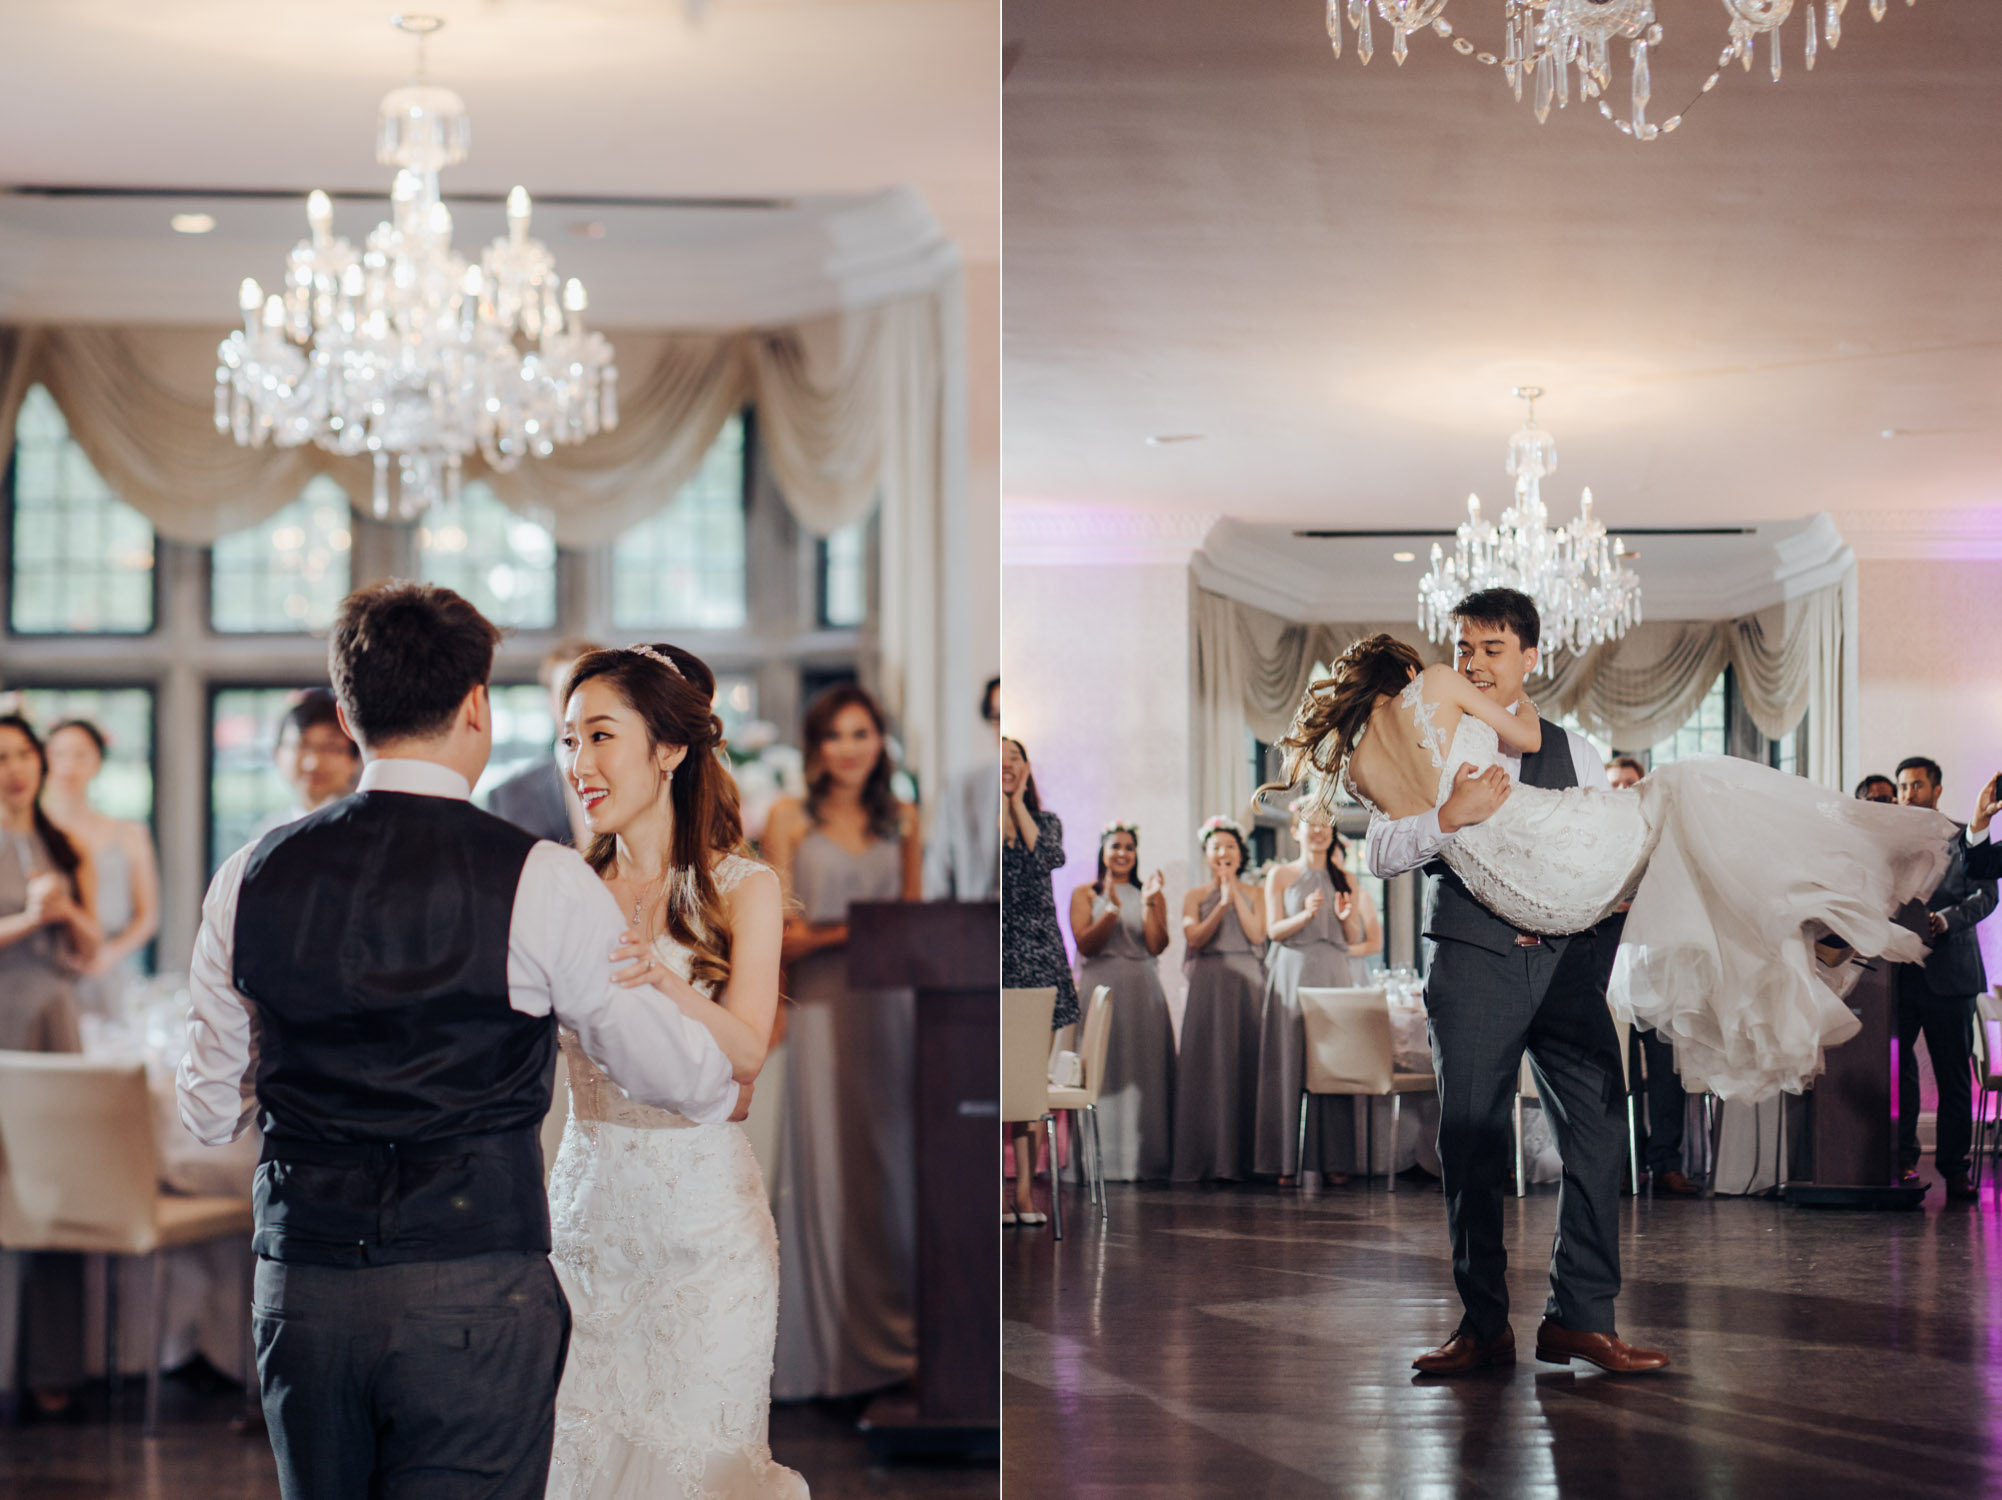 The First Dance of bride and groom at the Estates of Sunnybrook Wedding Vaughan Estate